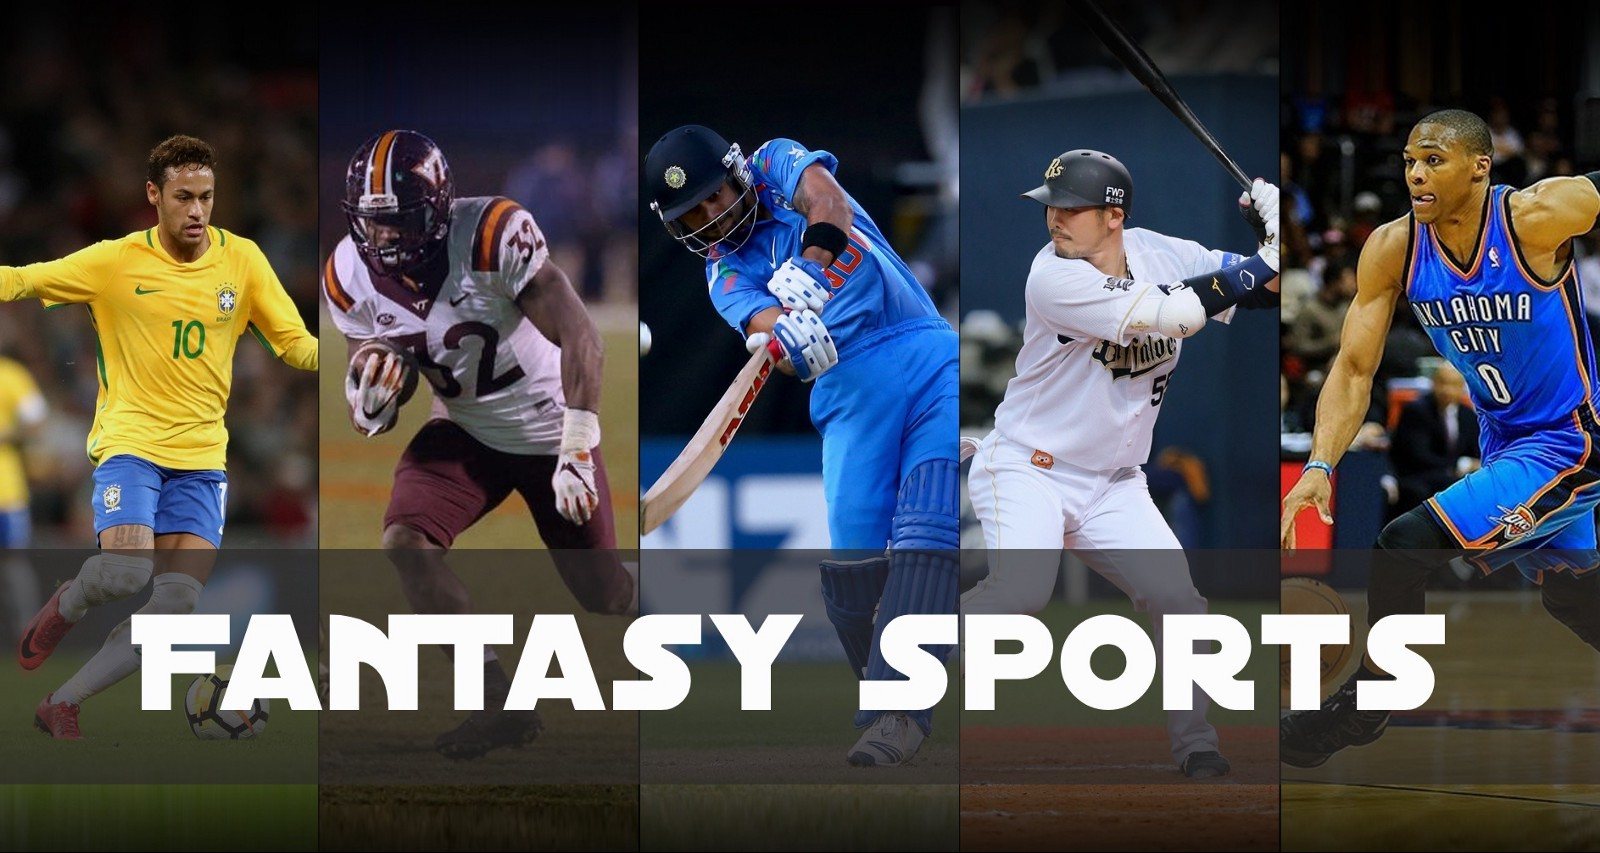 List of 10 Fantasy Sports App Development Company